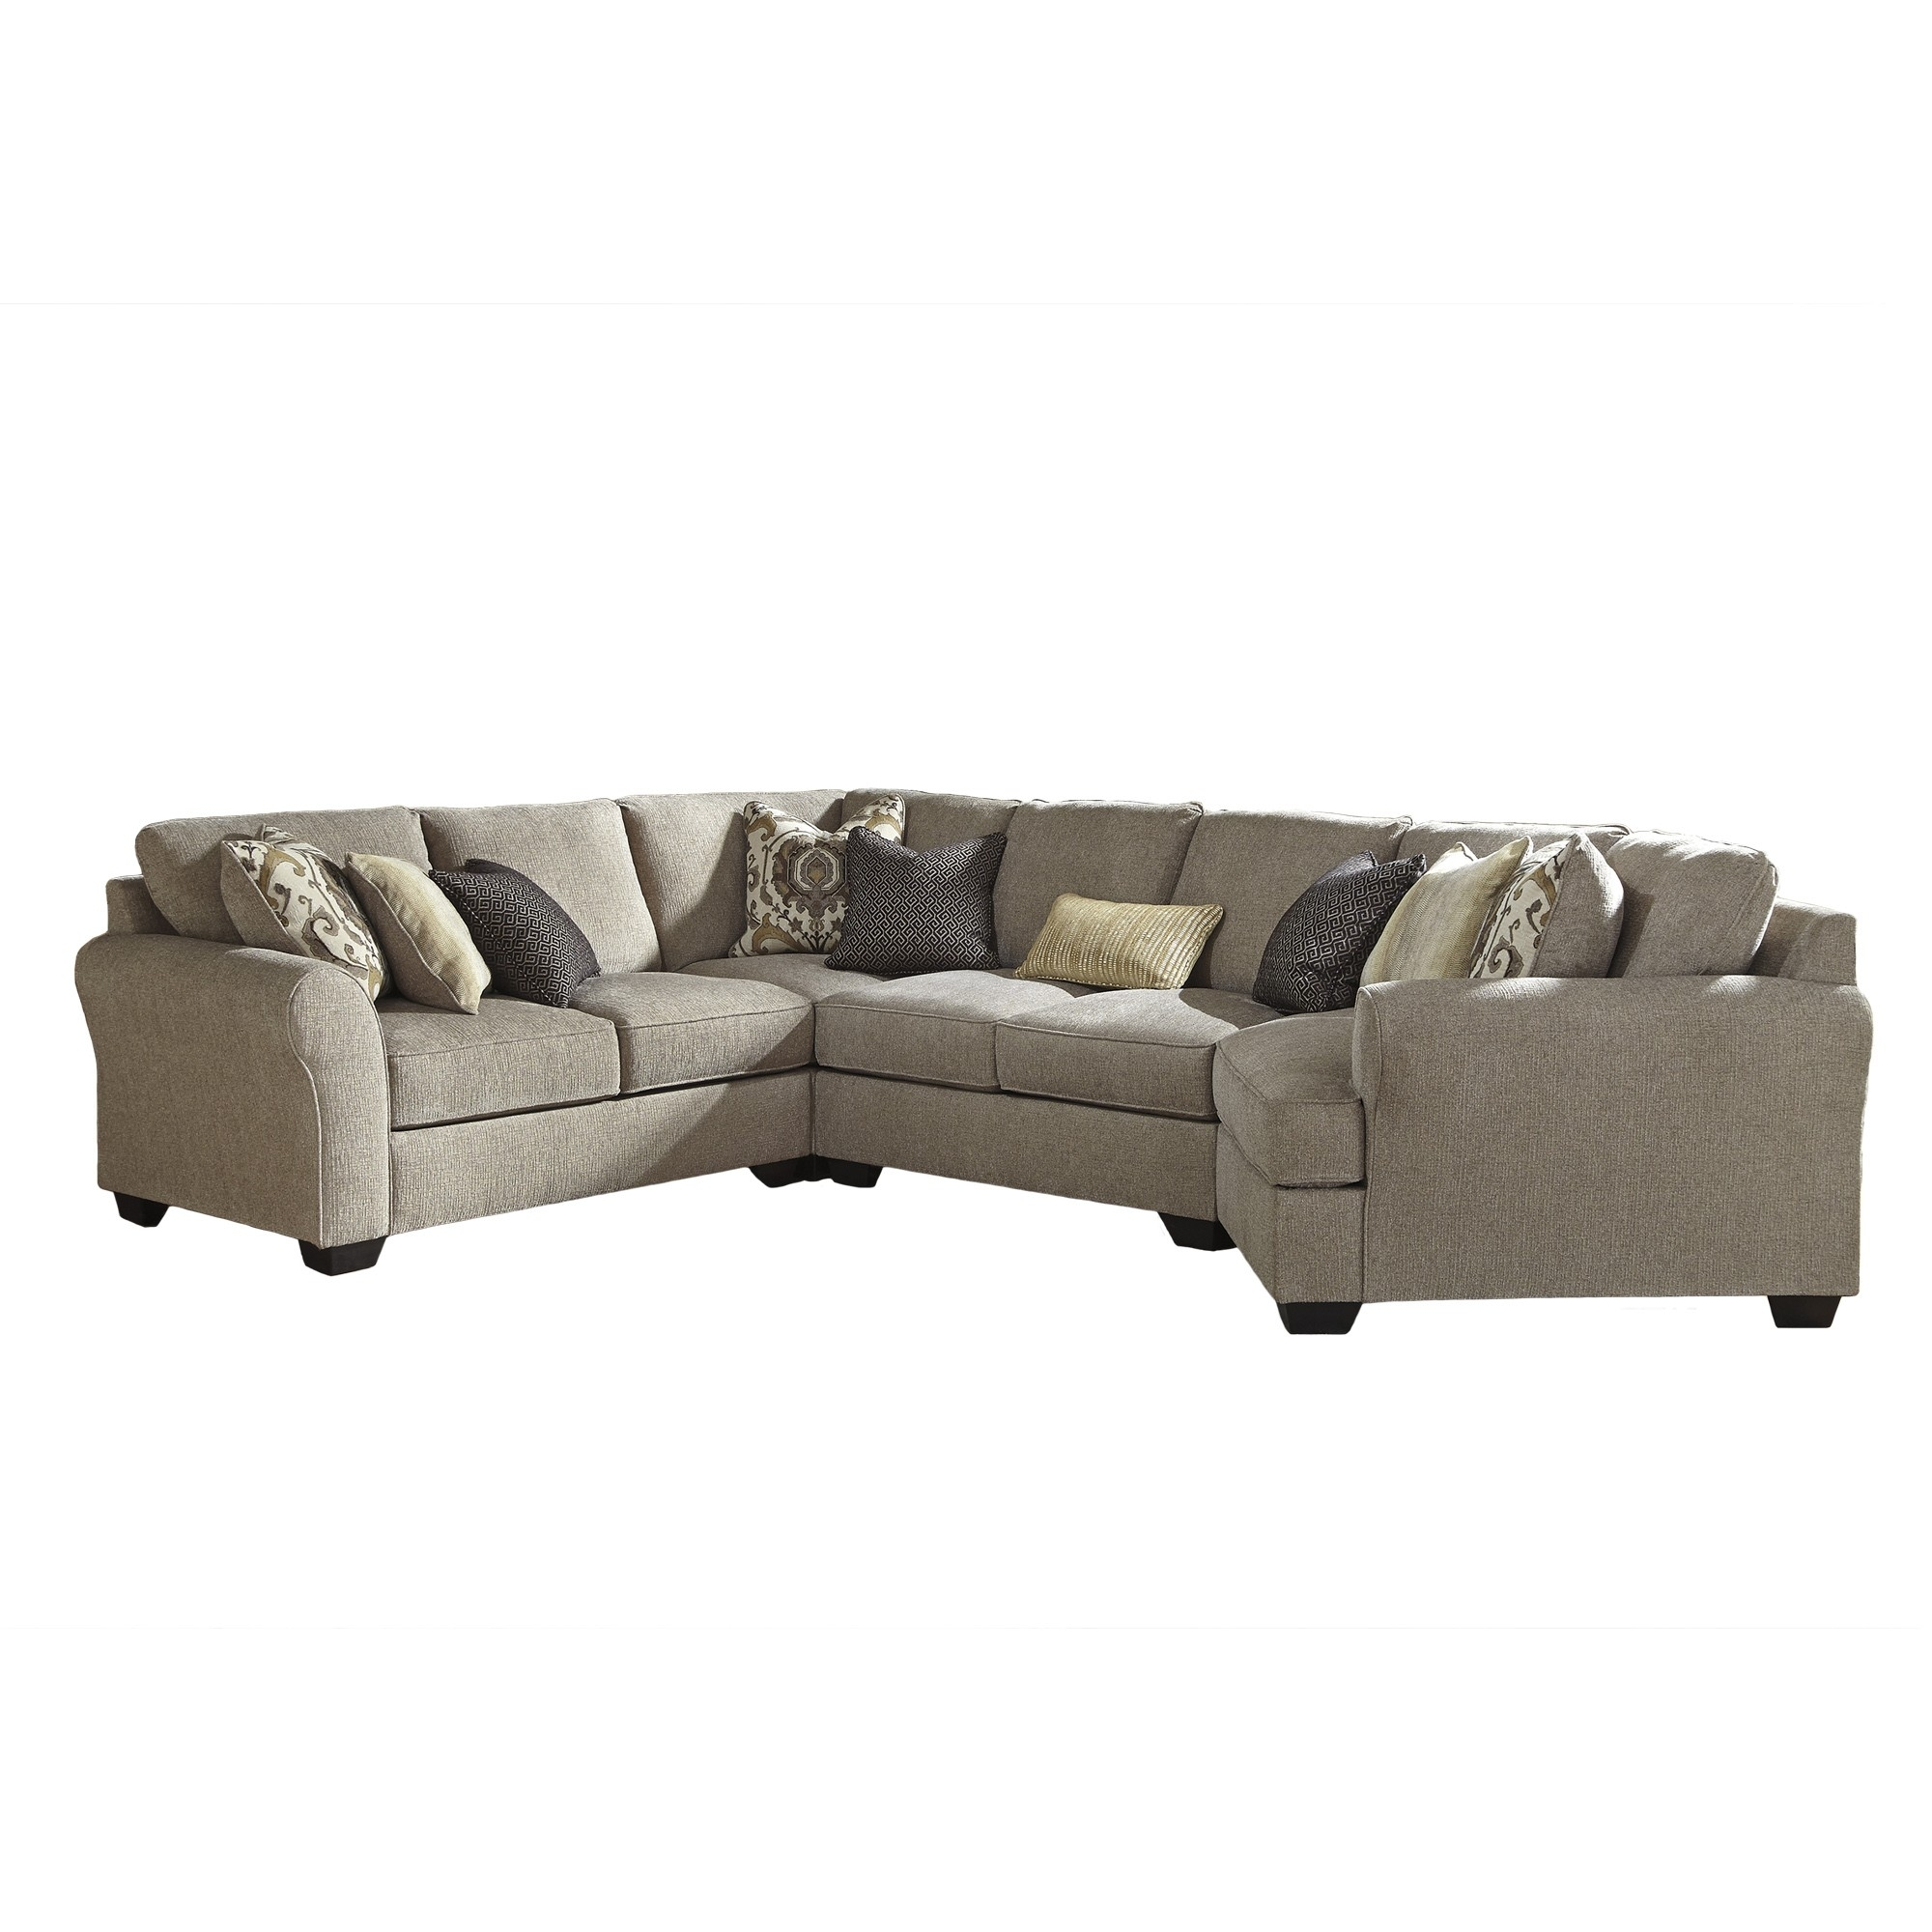 Pantomine Right Hand Facing 4 Piece Sectional | Tepperman's Throughout Teppermans Sectional Sofas (View 10 of 10)